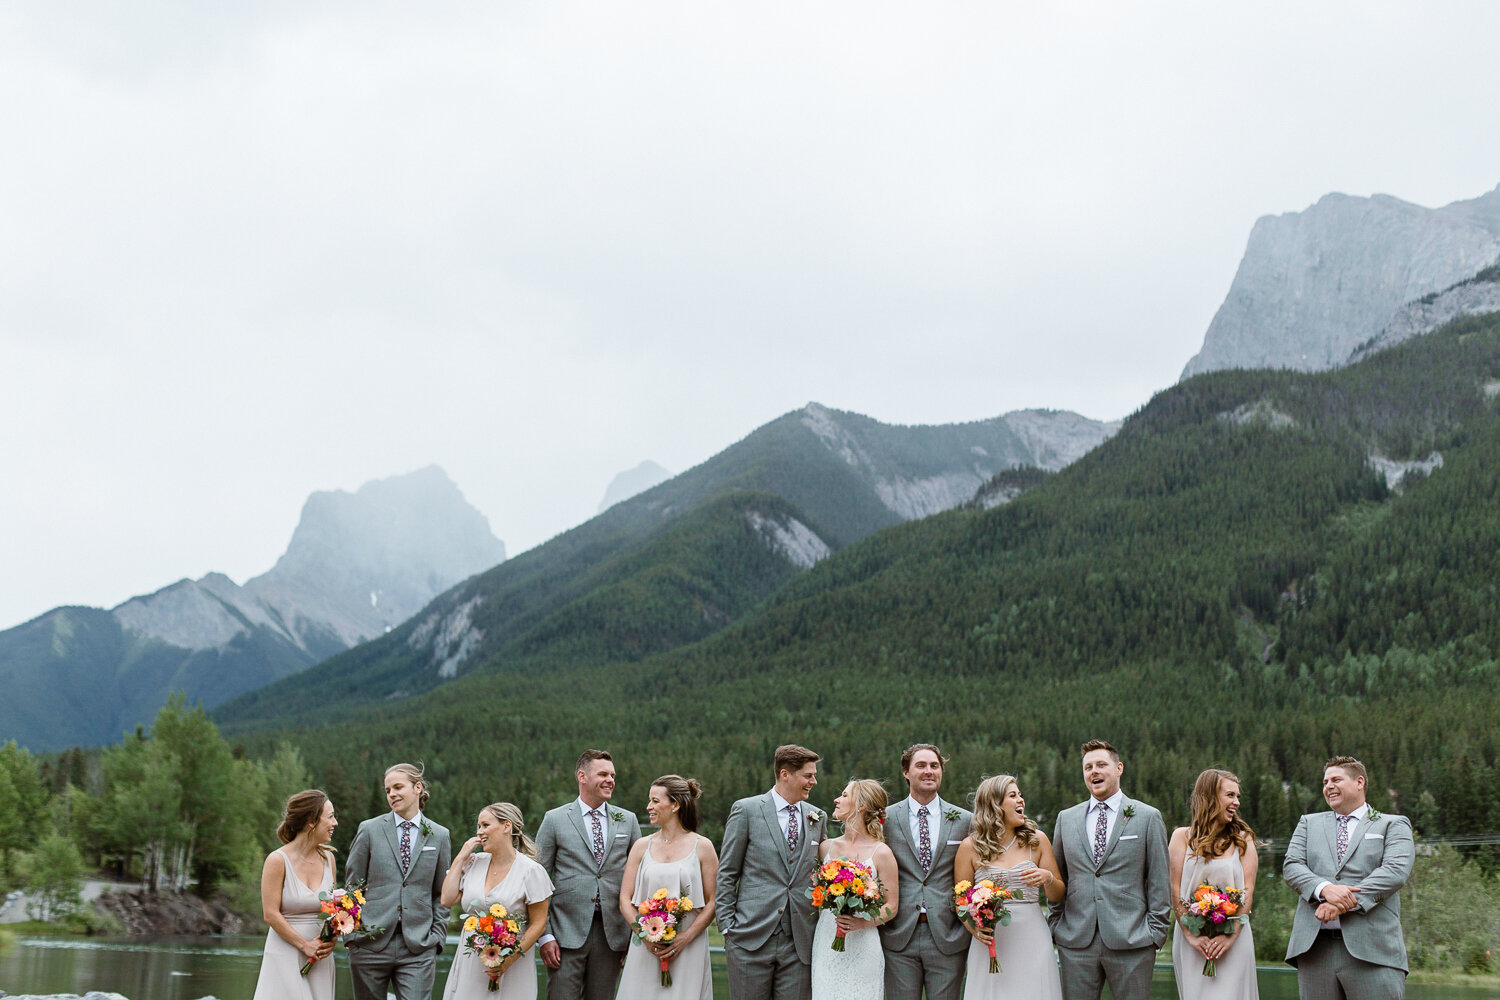 86-Canmore-Alberta-Real-Wedding-Best-Wedding-Photographers-125.JPG